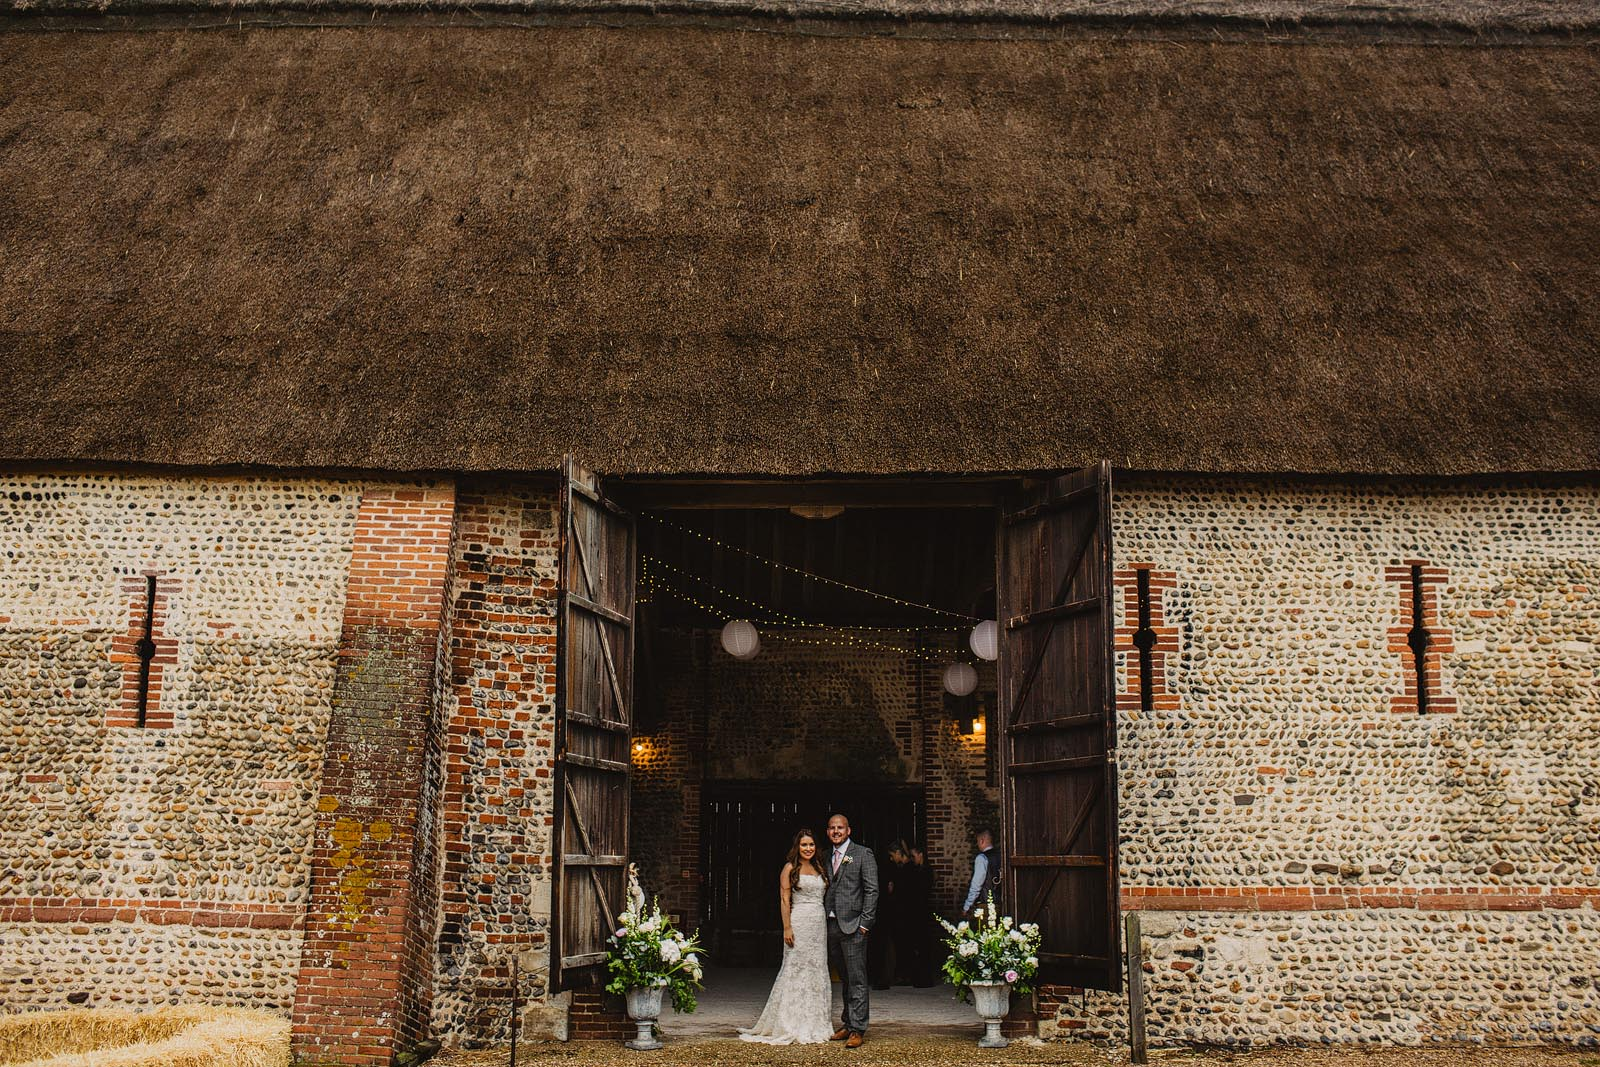 weddings at Waxham barn